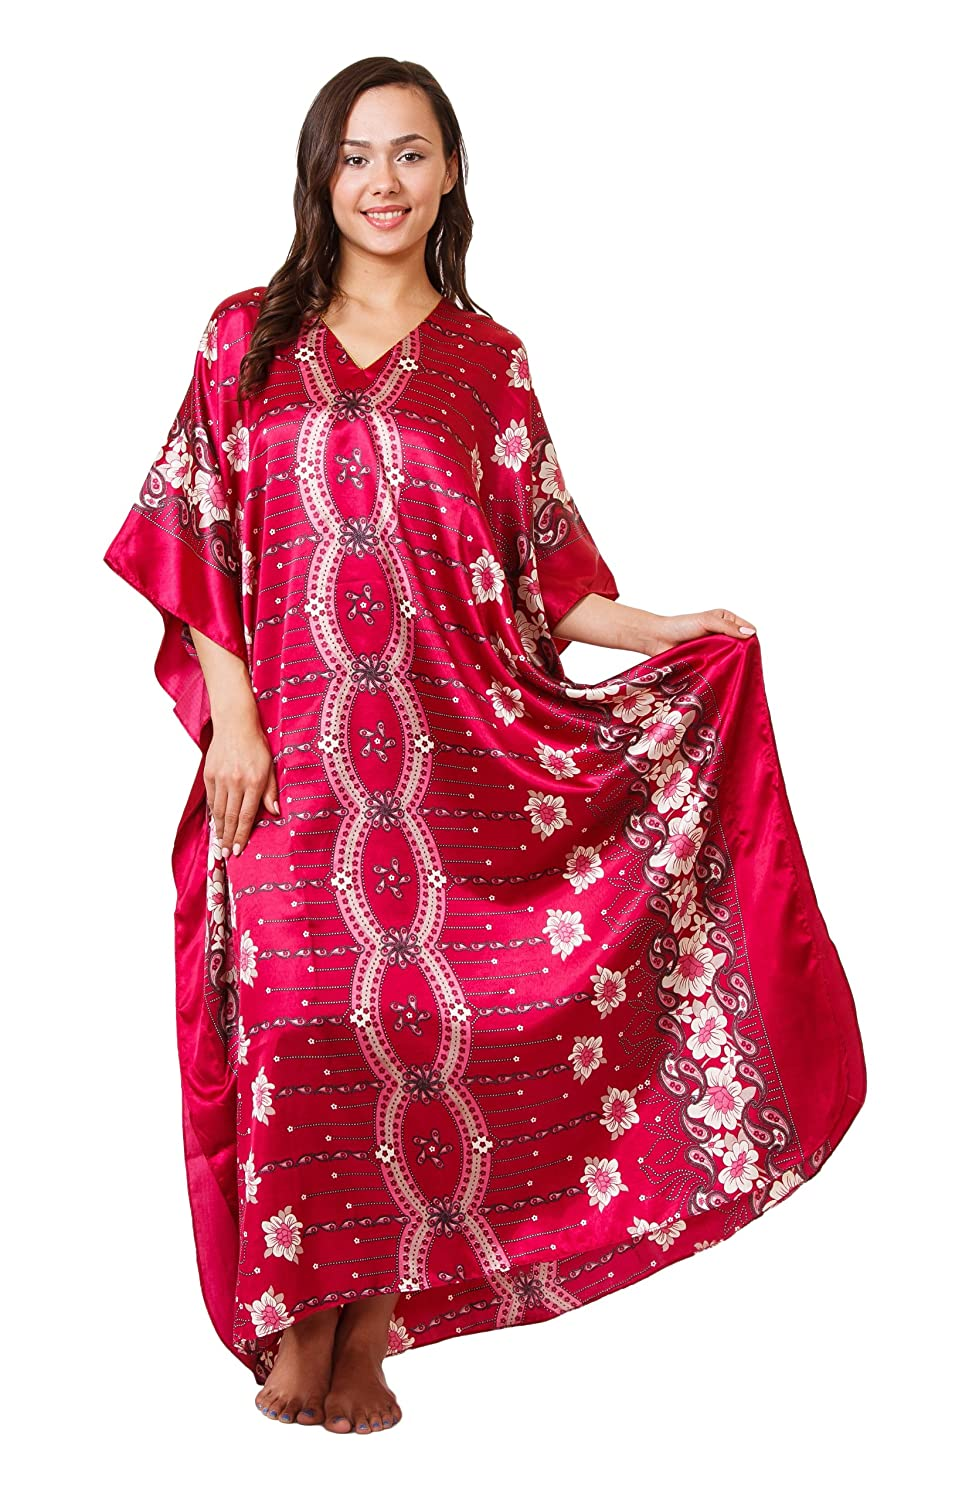 Up2date Fashion Caftan with Cherry Blossom Print, One Size, Style#Caf-67 Caf-61